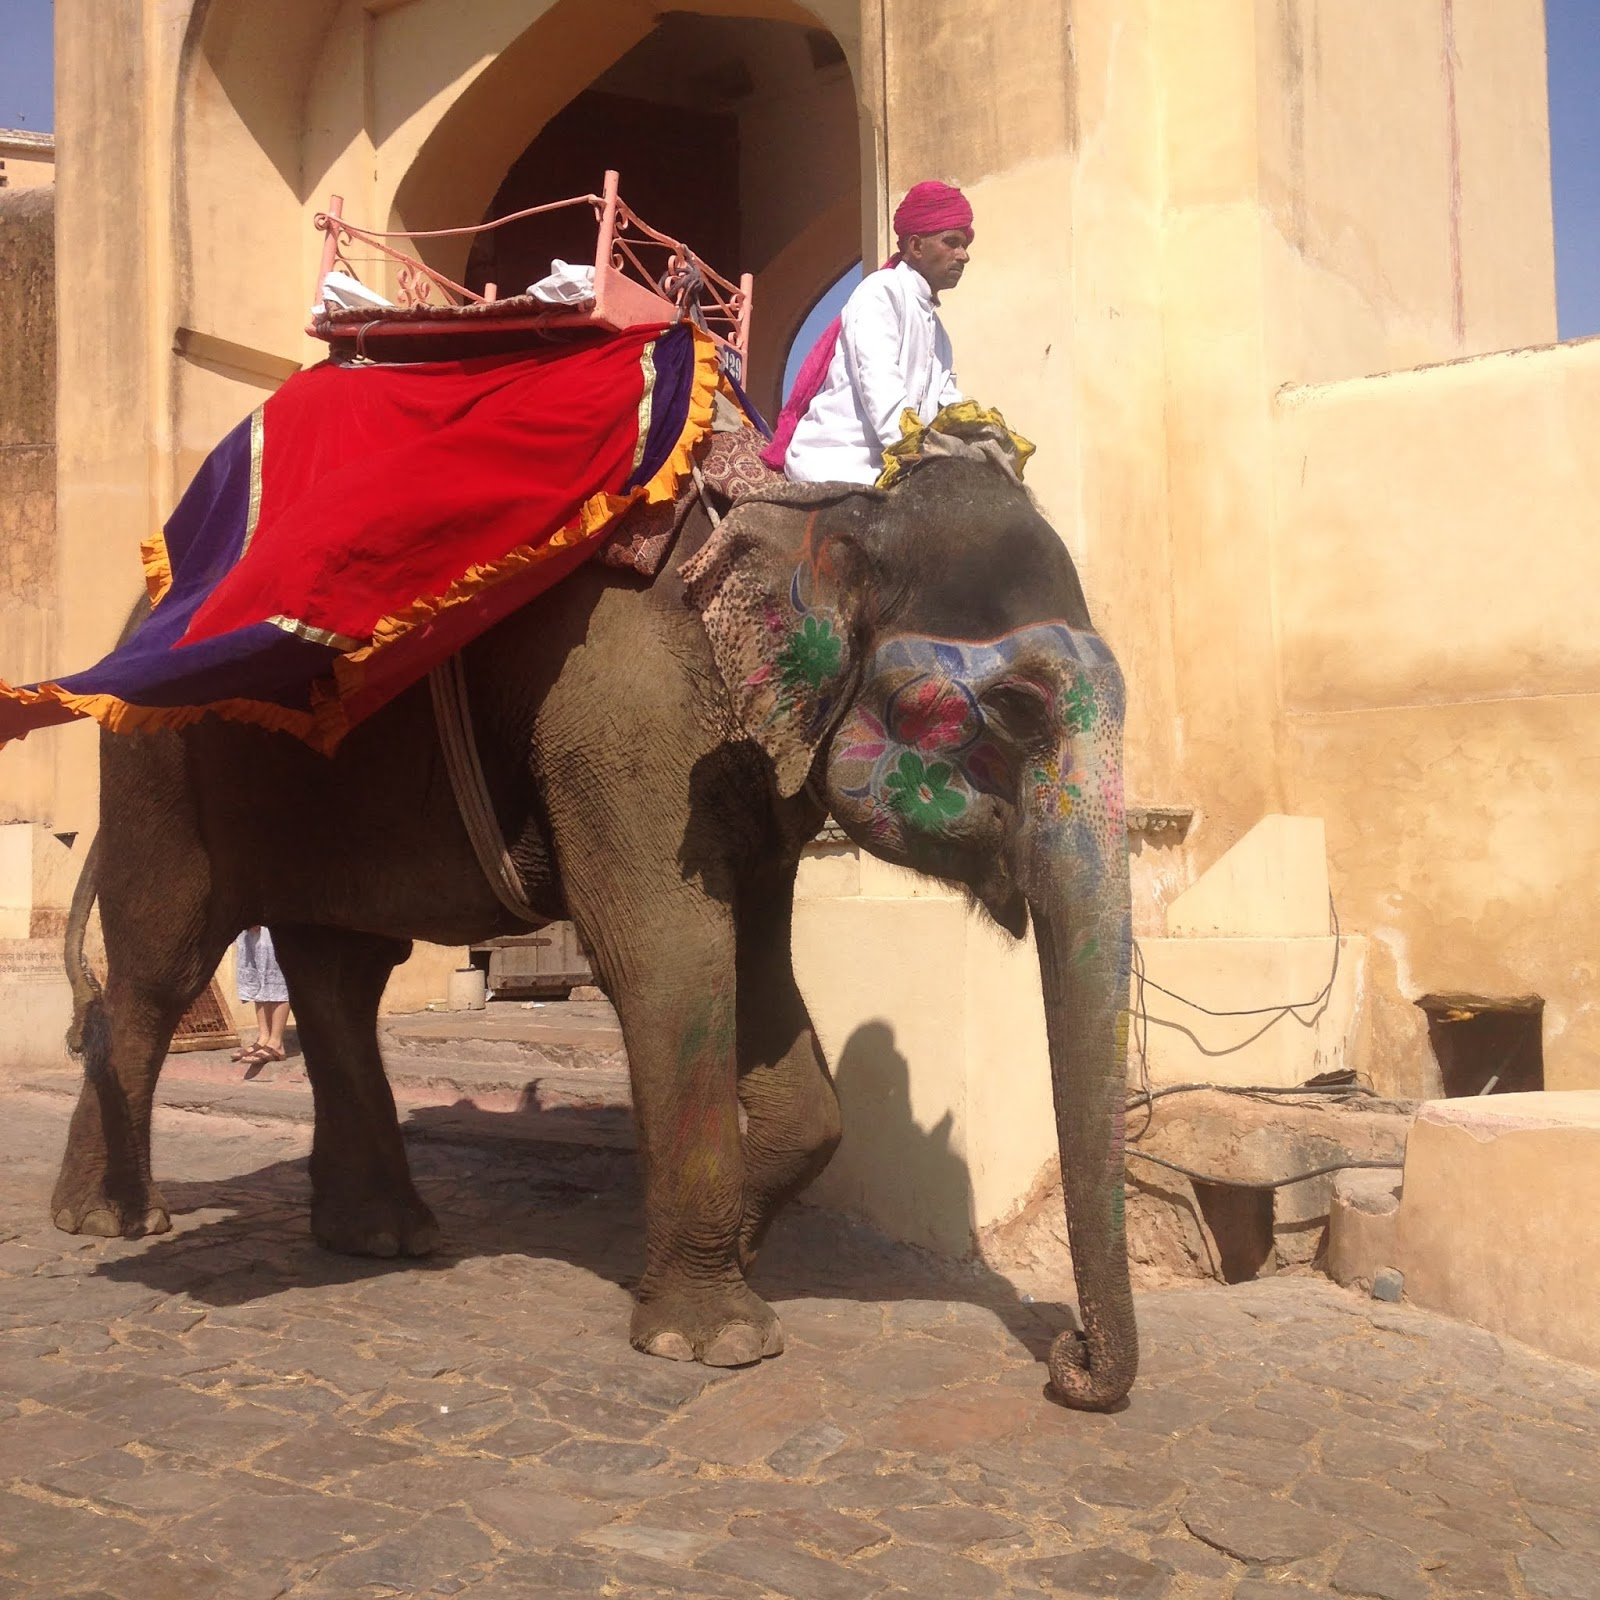 Elephants are used at the Amer Fort